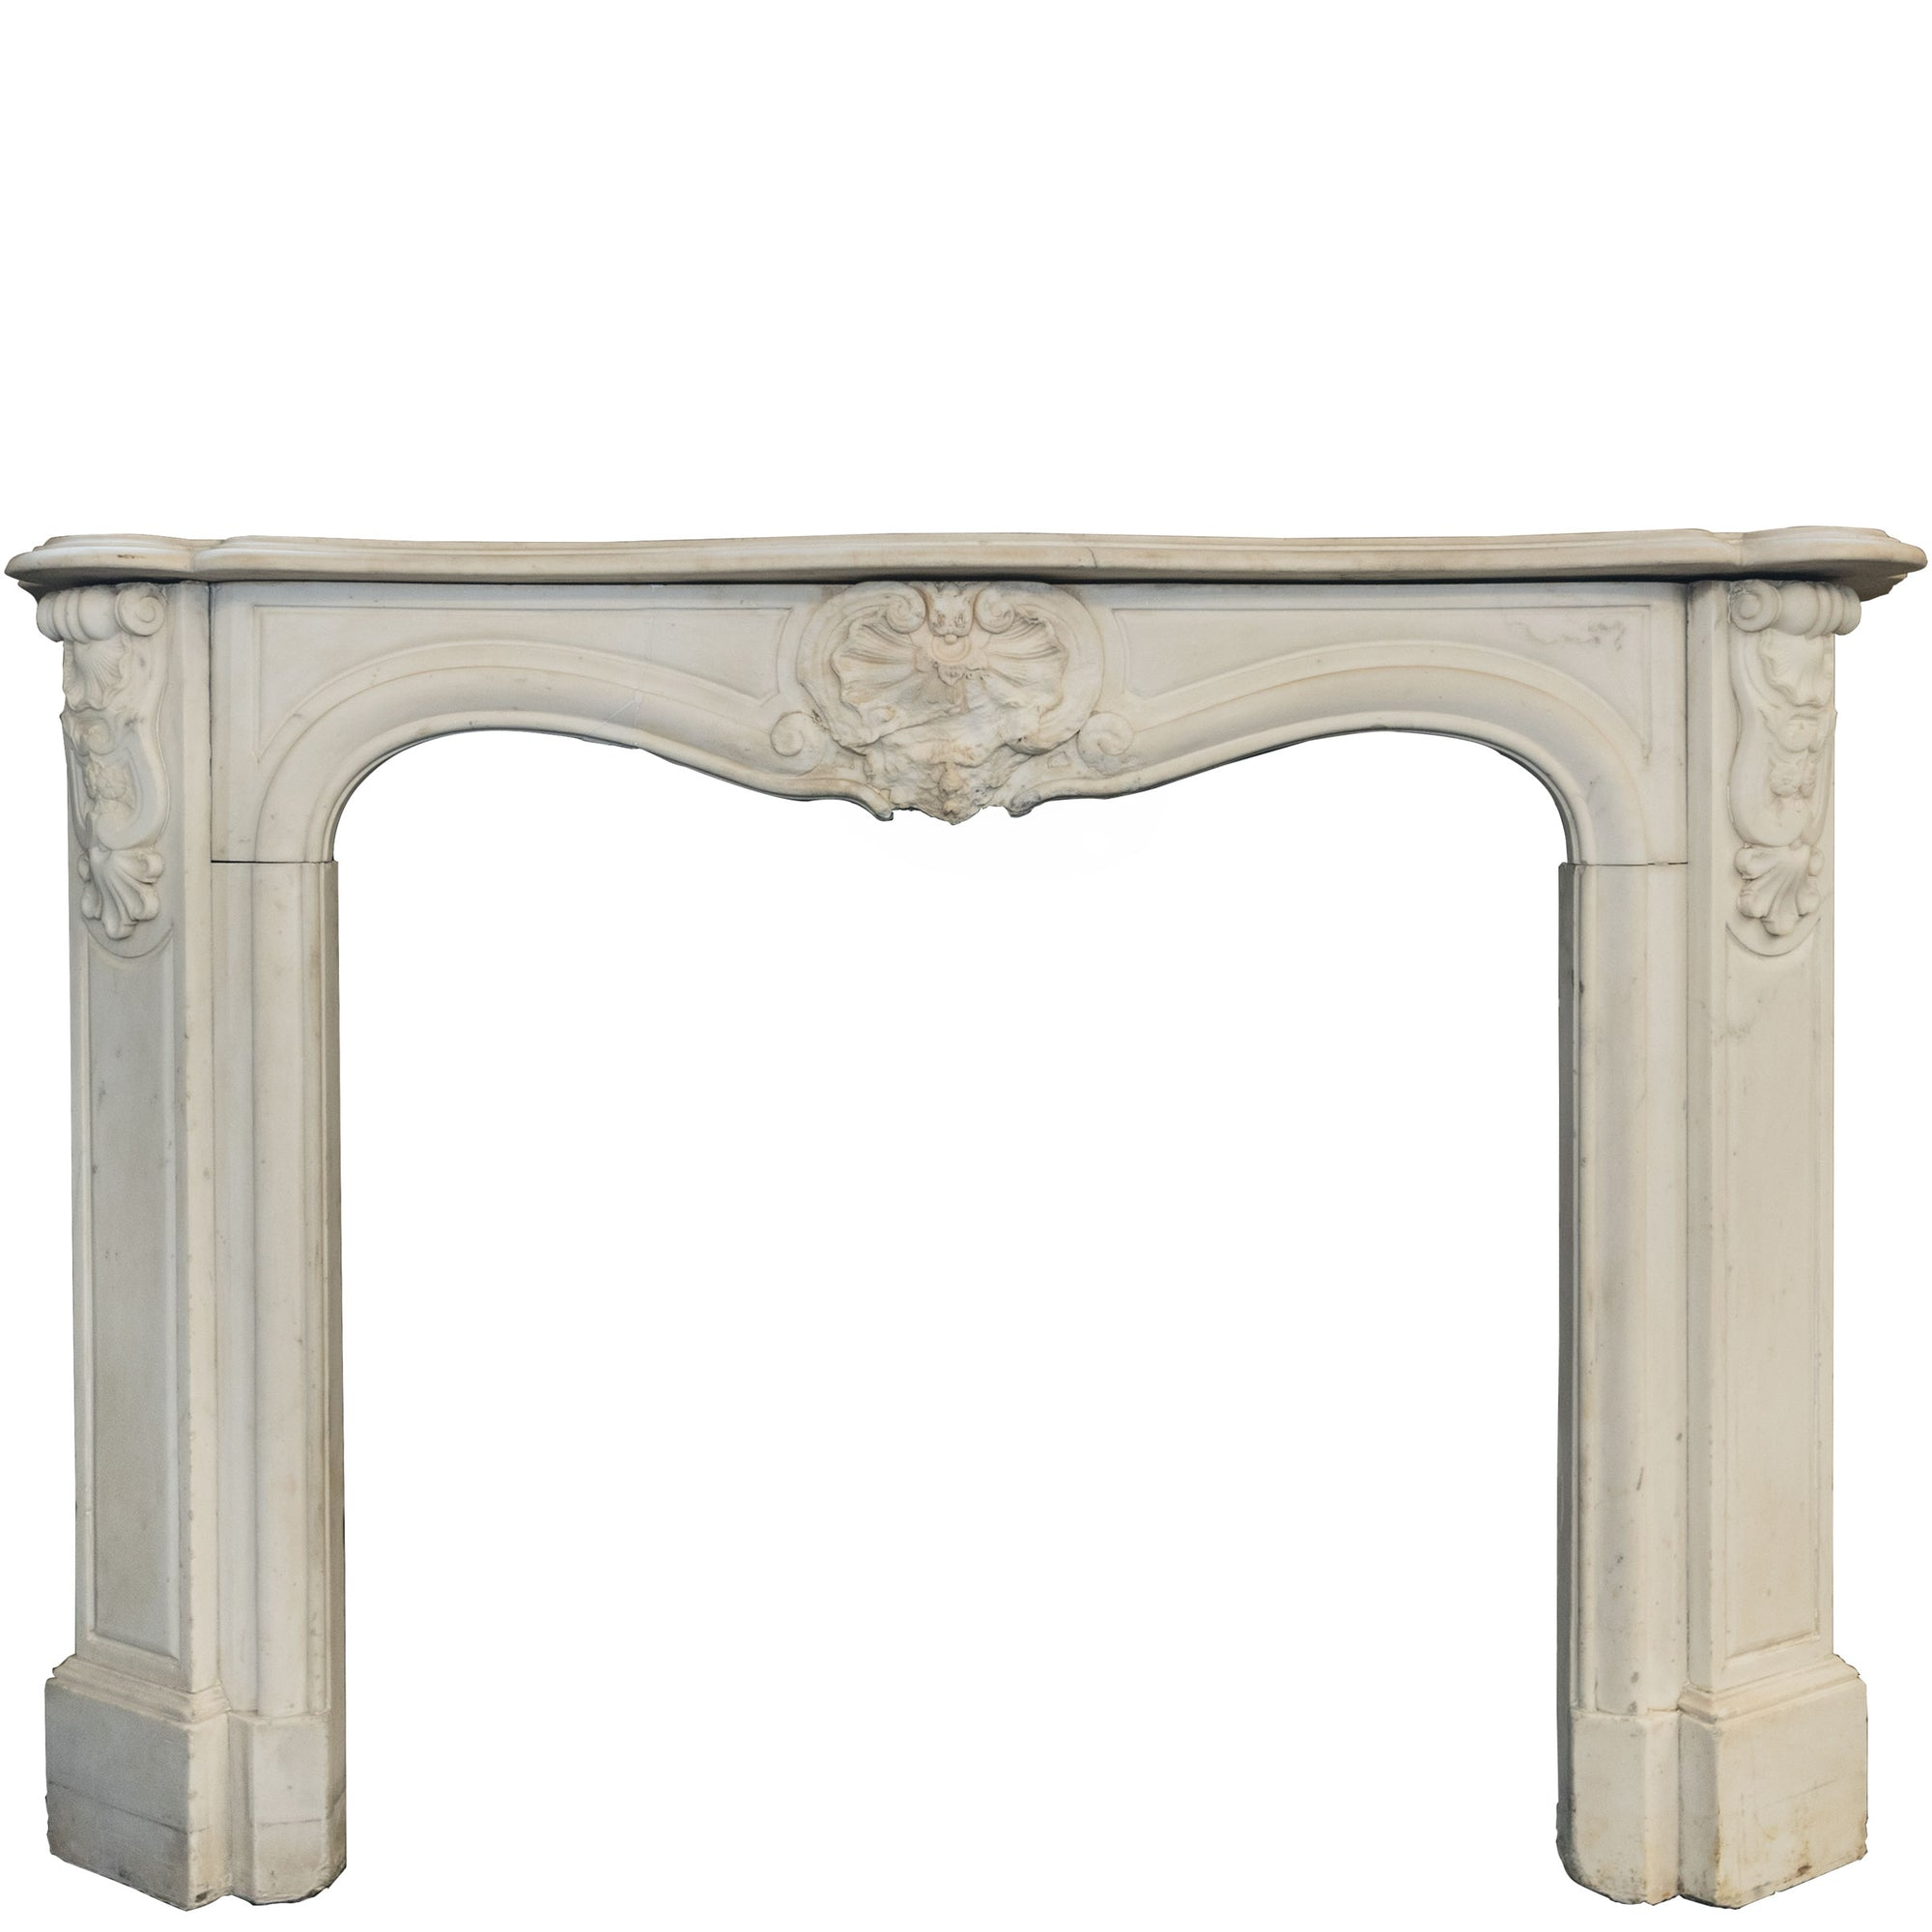 Antique Louis Style Carrara Marble Fireplace Surround - The Architectural Forum